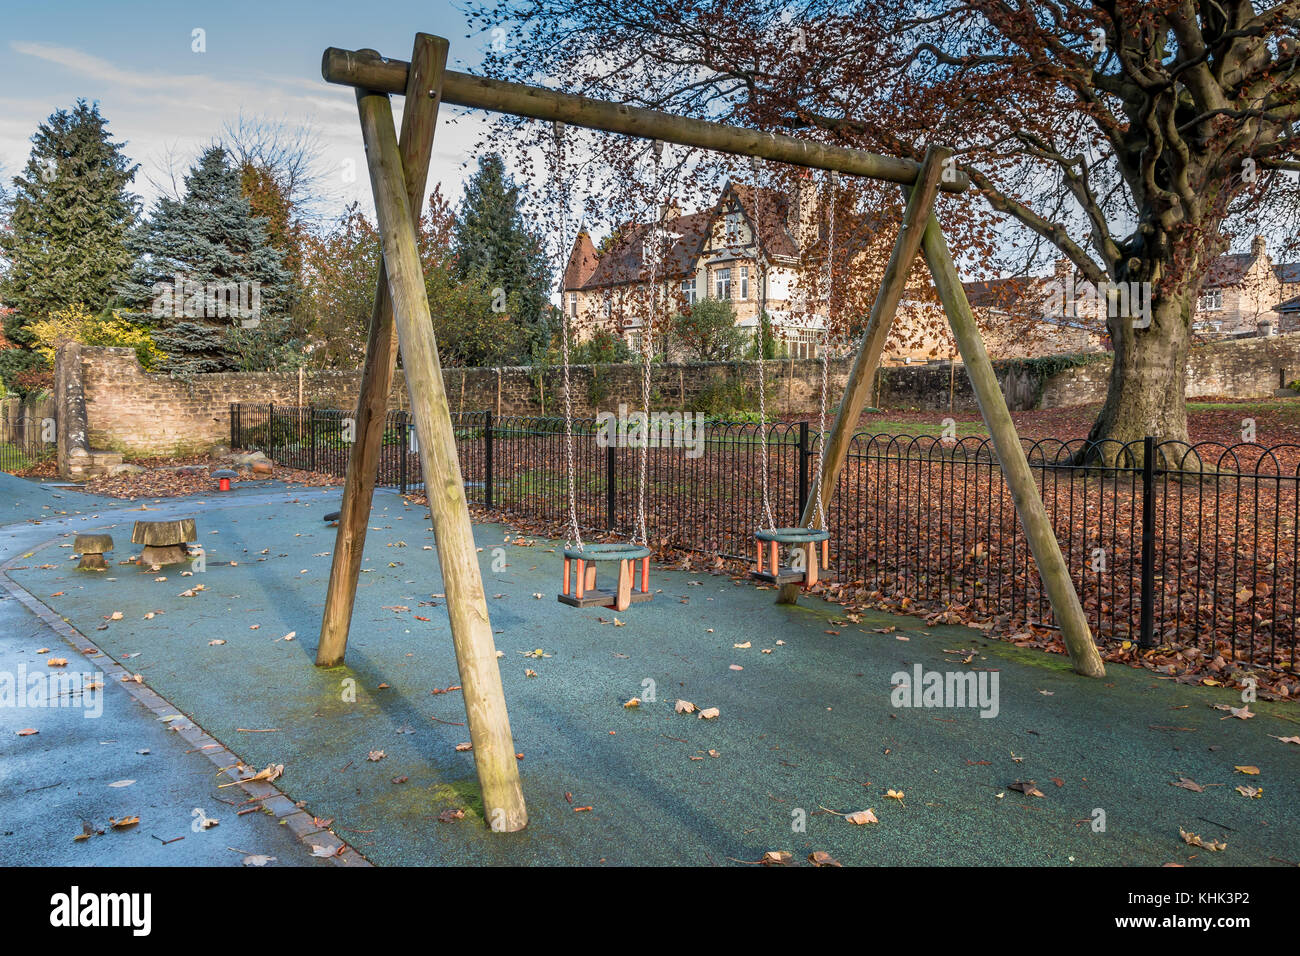 An unoccupied pair of children's swings in a play area closed for winter at Barnard Castle, North East England, - Stock Image